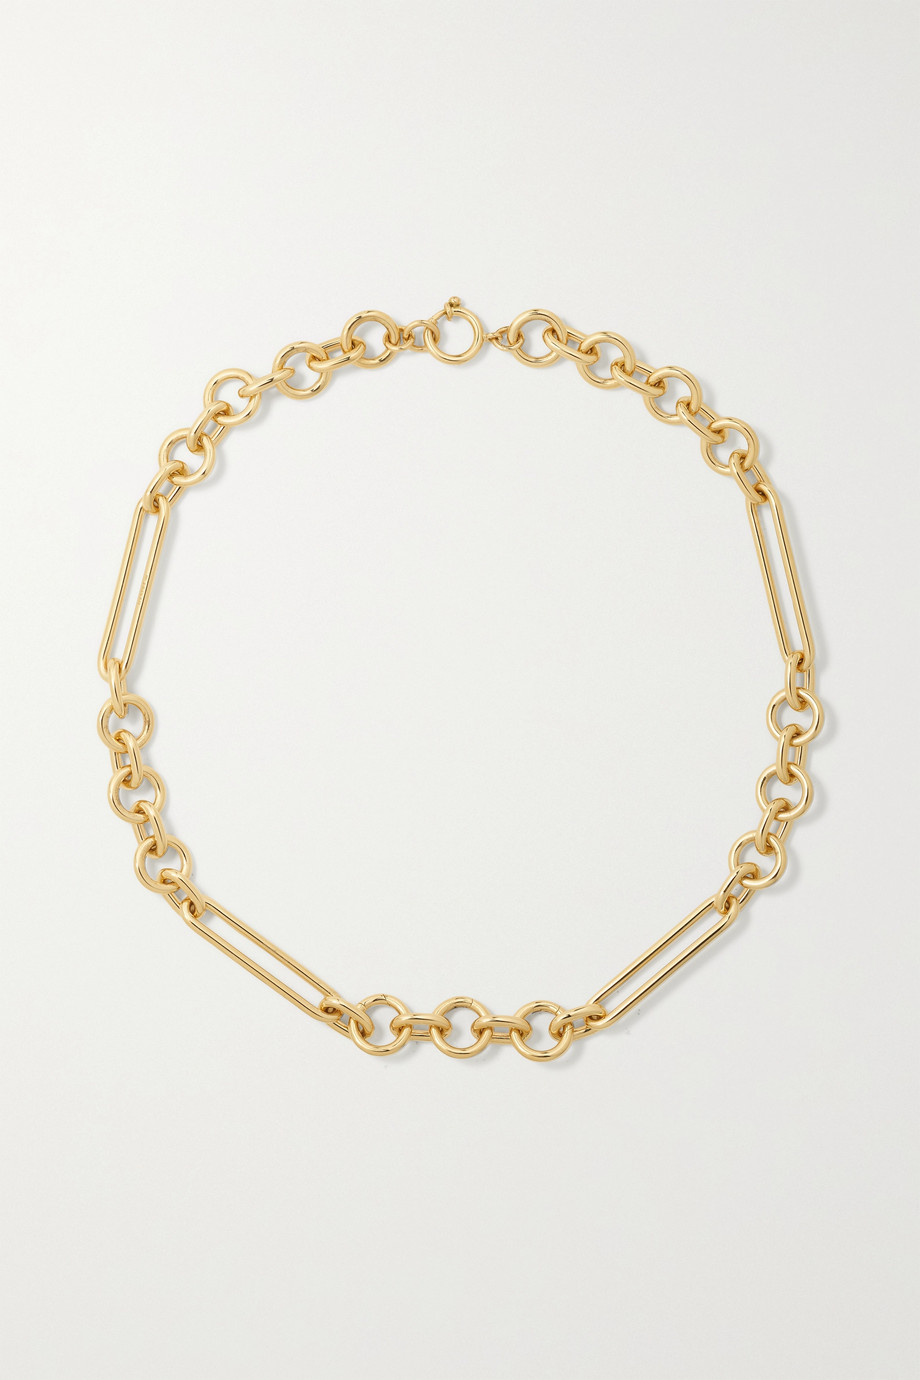 FOUNDRAE + NET SUSTAIN 18-karat recycled gold necklace